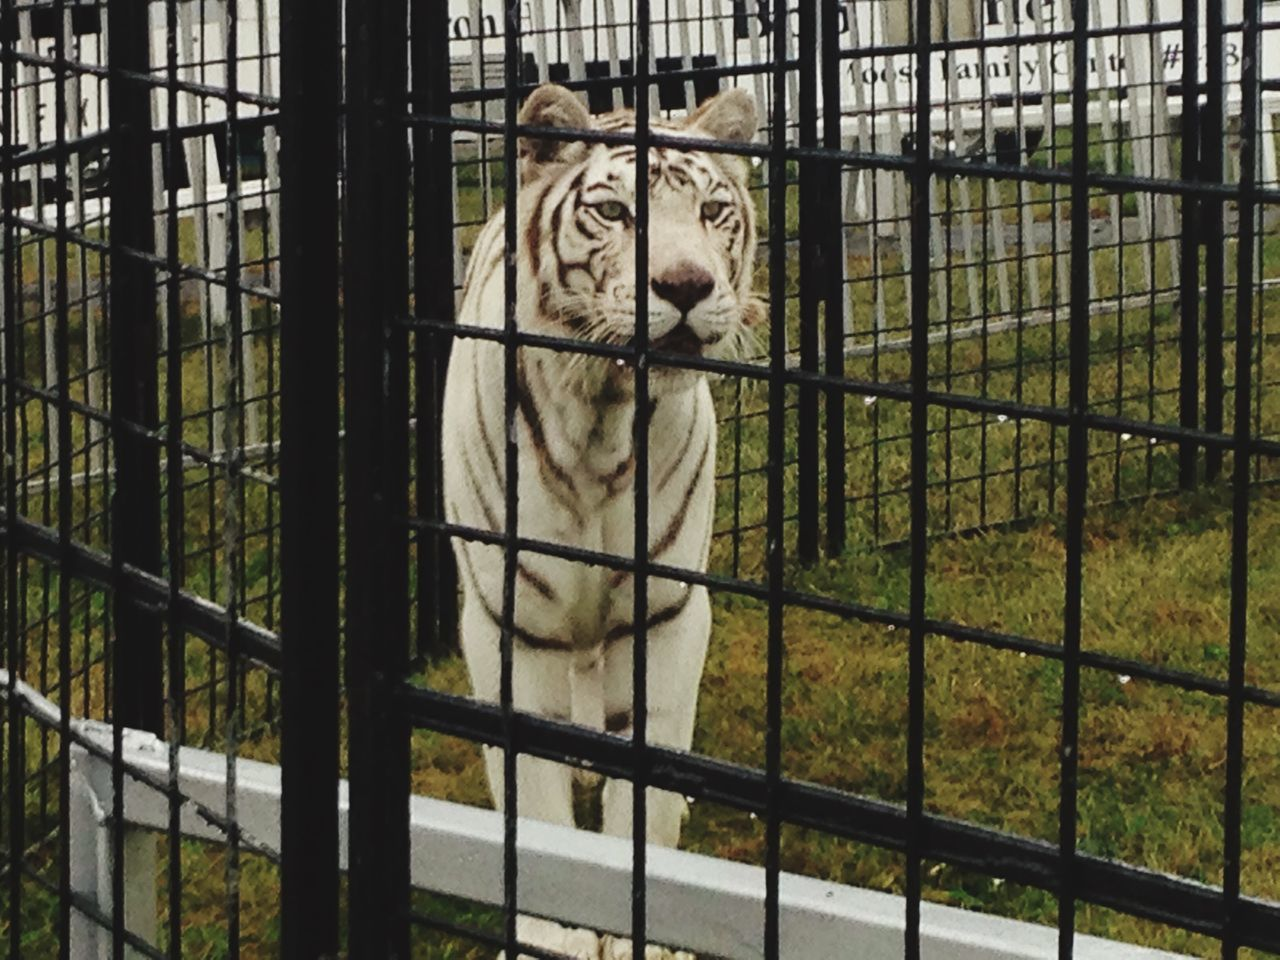 White Tiger Fair Fairground Attraction Check This Out Hello World